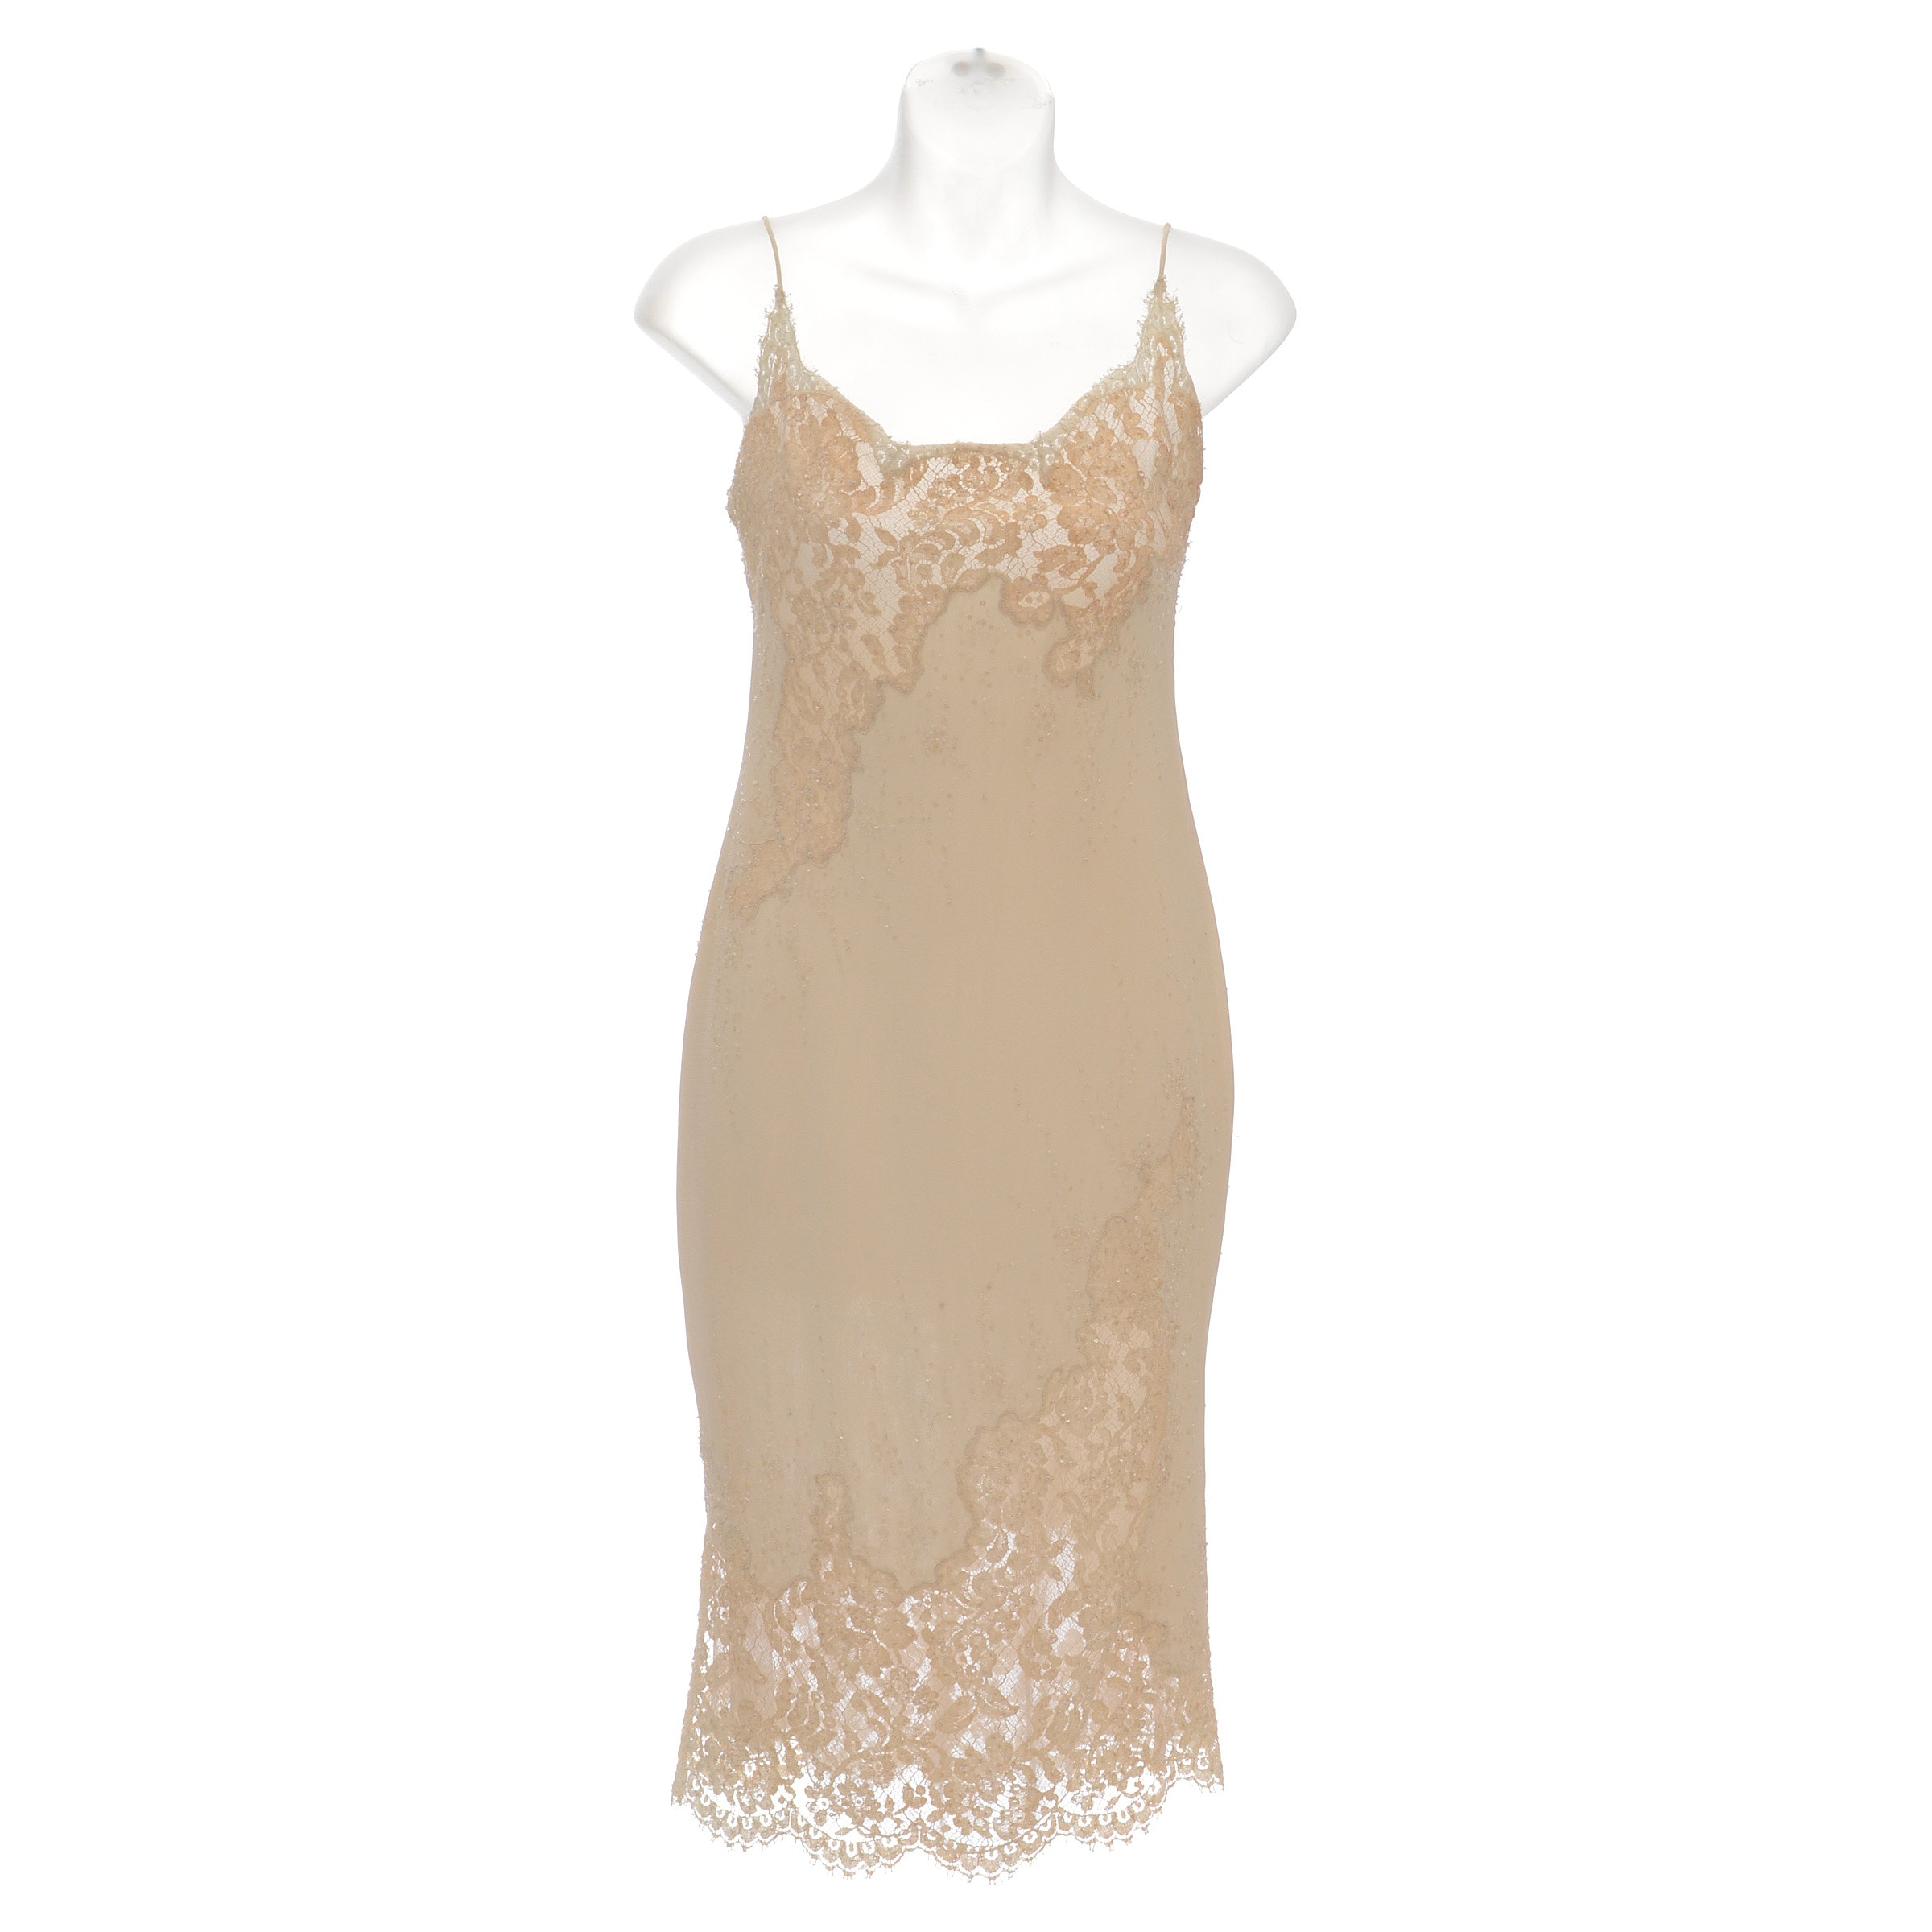 Formal Slip Dress in Ivory with Lace and Embellished with Hand Sewn Sequins and Seed Beads Susan Wore at a Party When She Was 21